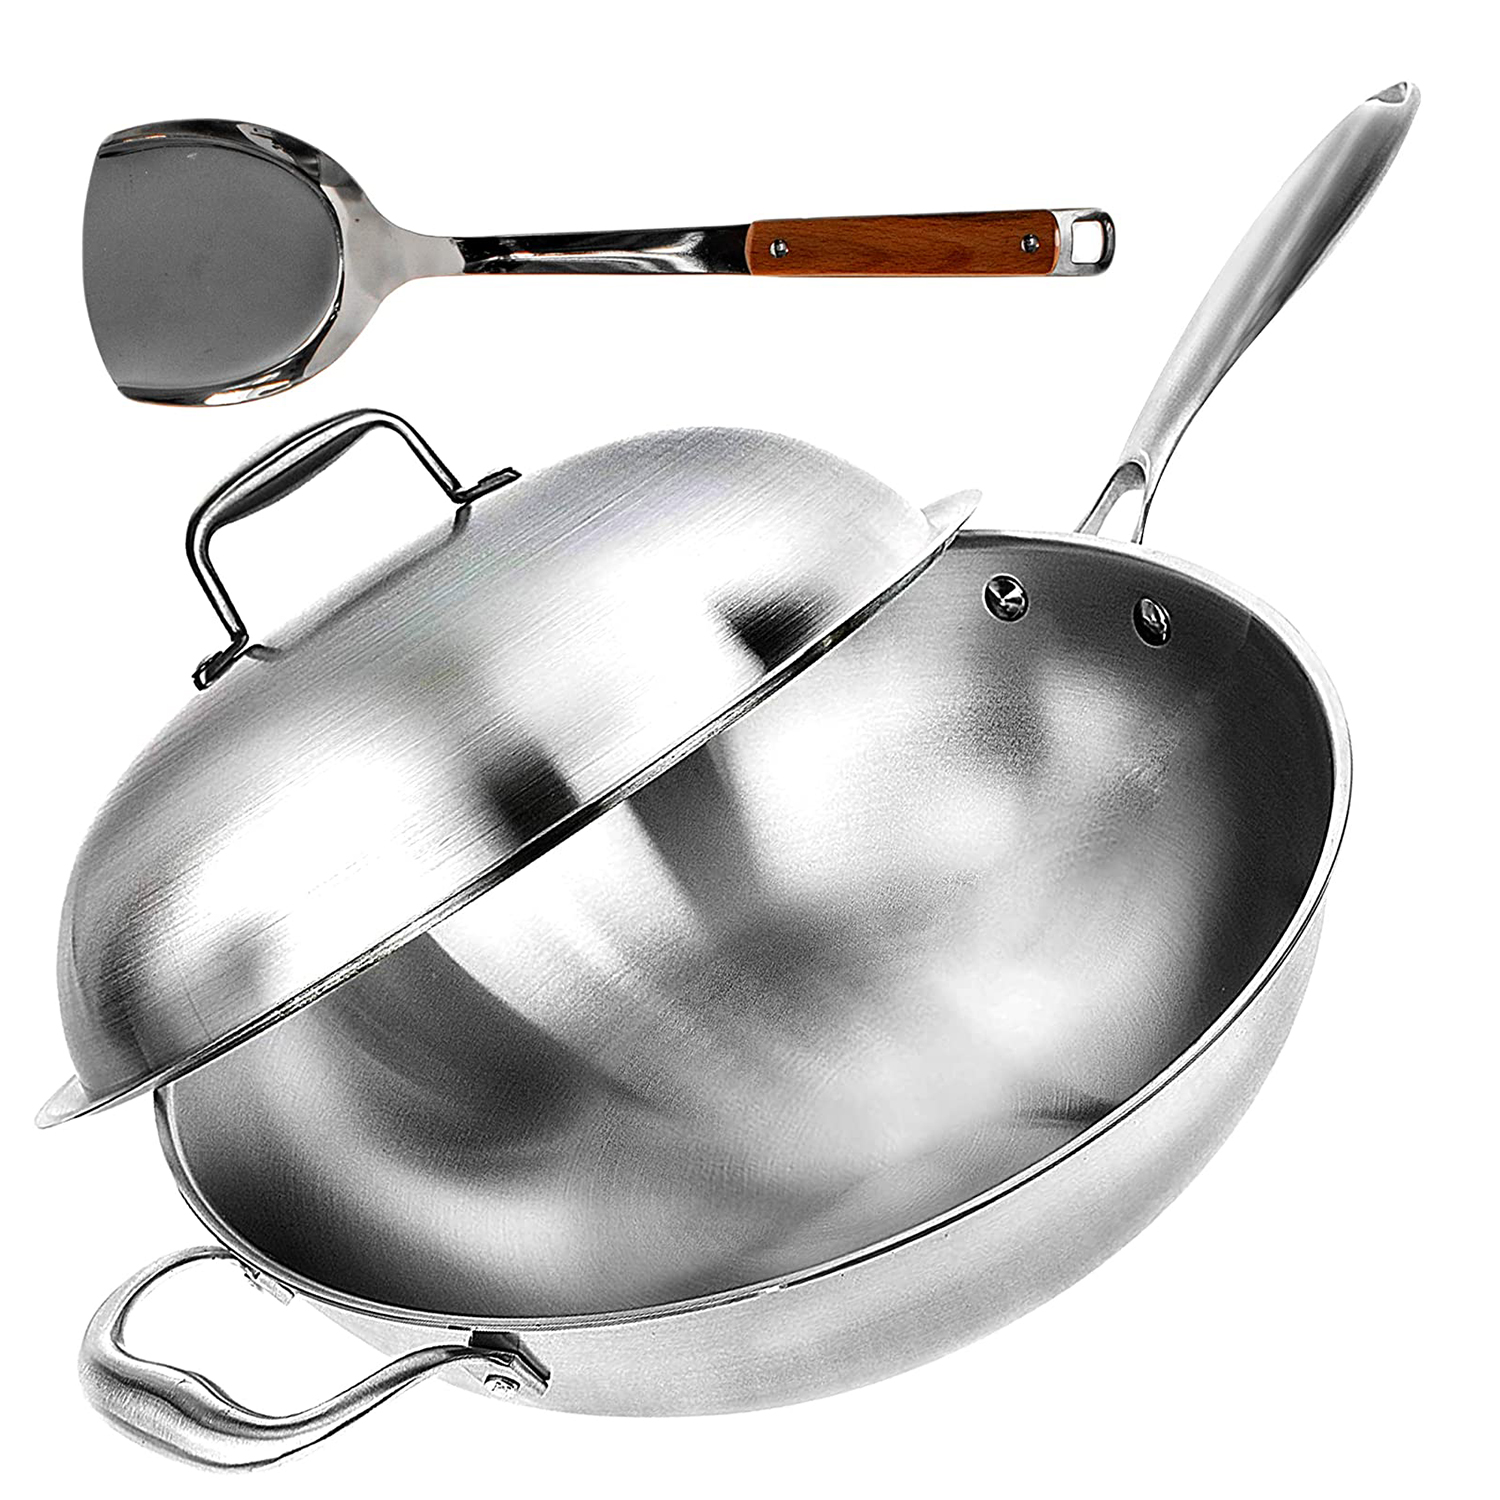 """Wok Pan with Lid - 13"""" Wide, 2mm Thick Stir Fry Frying Pan Stainless Steel"""